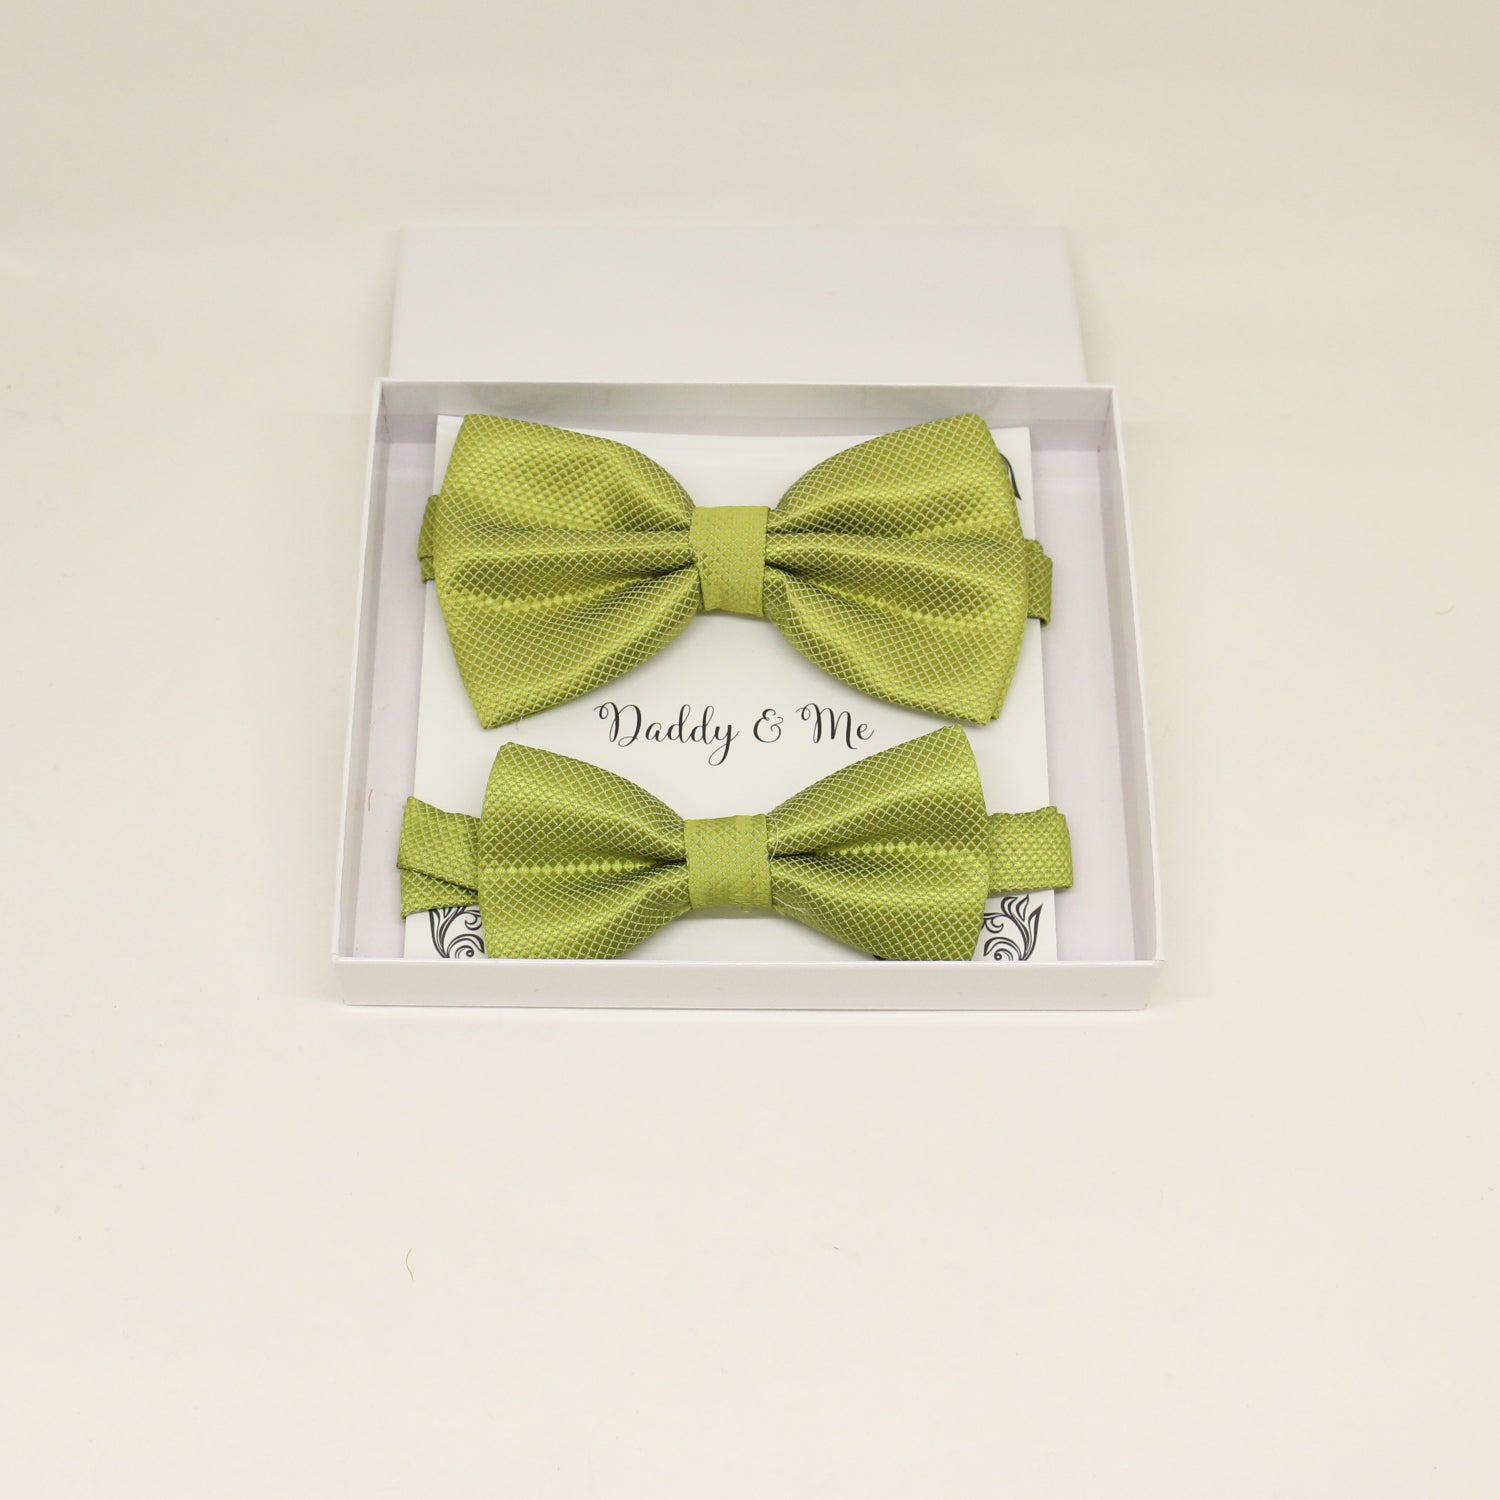 Green Bow tie set for daddy and son, Daddy and me gift set, Grandpa and me, Green Kids Toddler bow tie, Green bow tie set, Grandpa gift